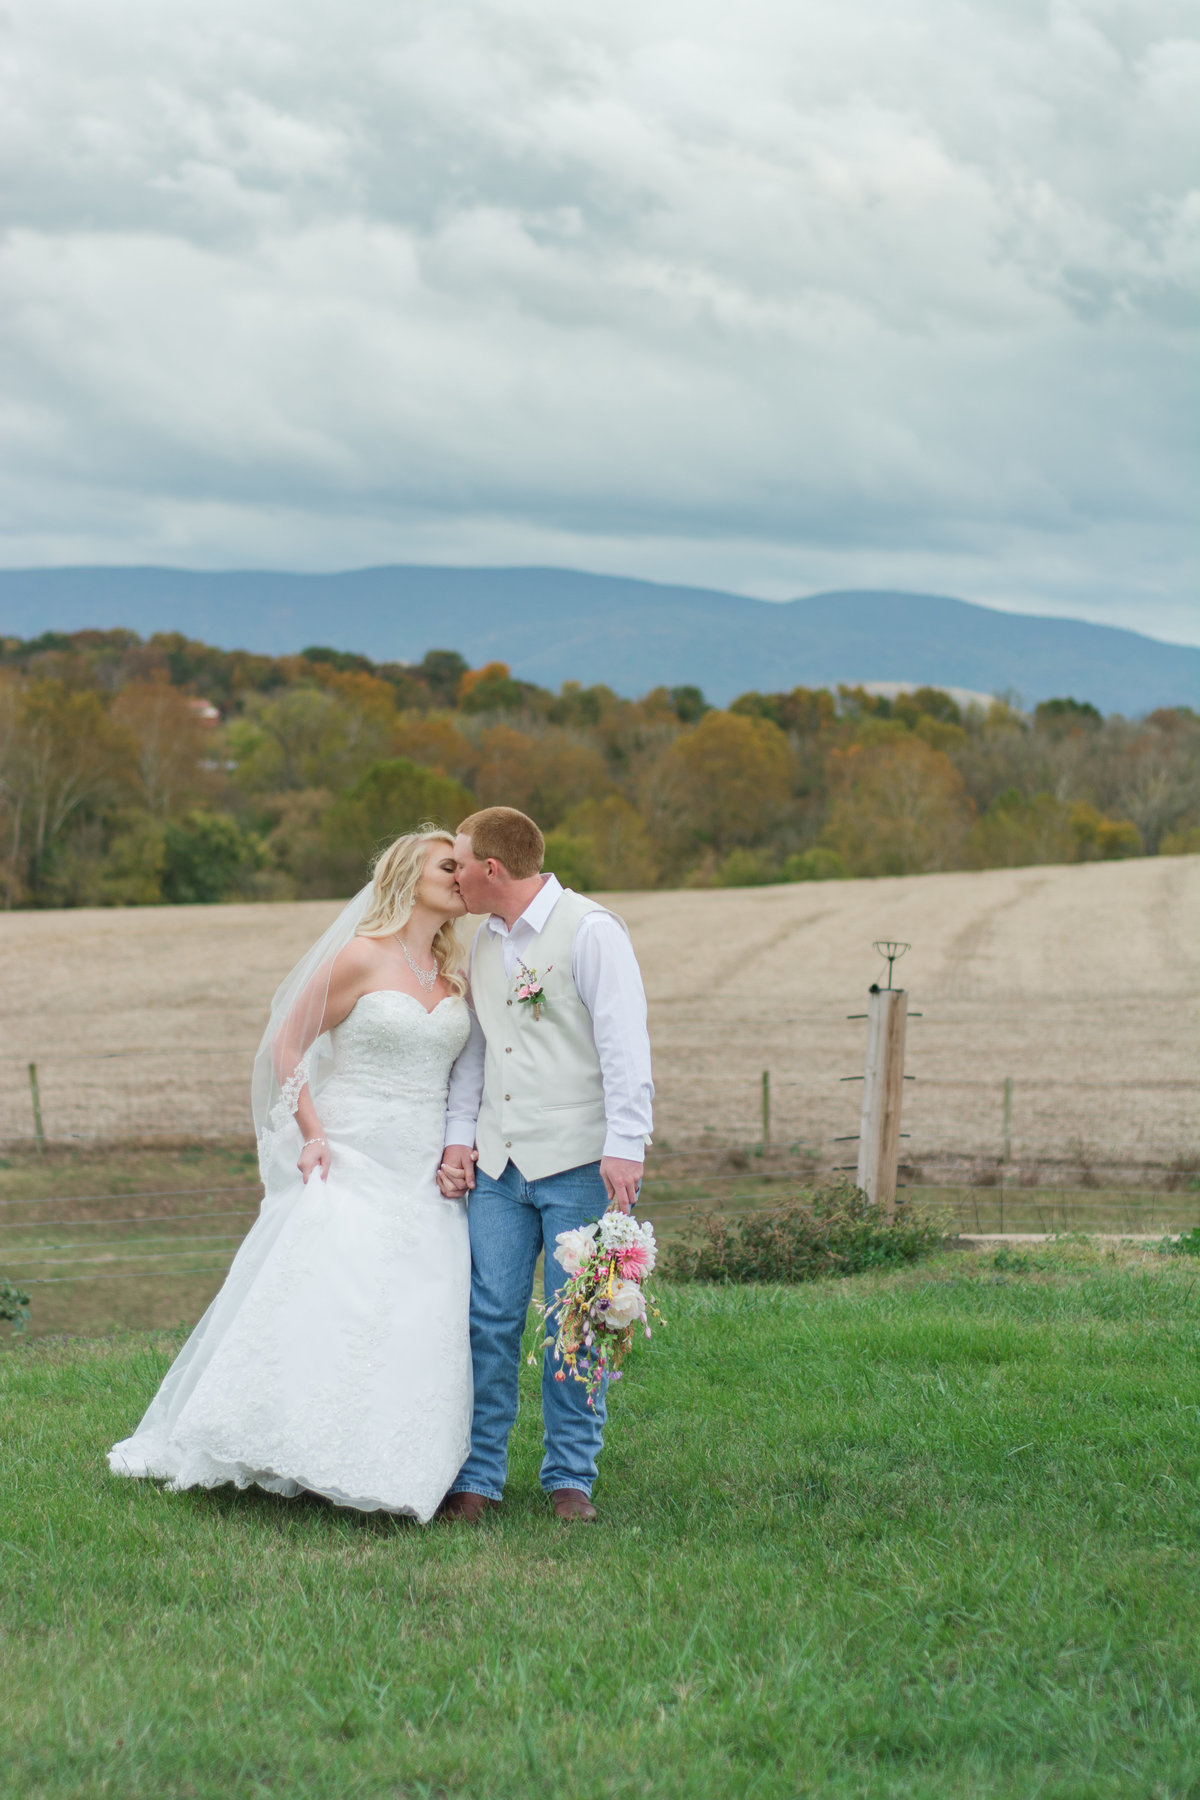 Rivercrest Farm Vacation Cabins and Event Center Weddings